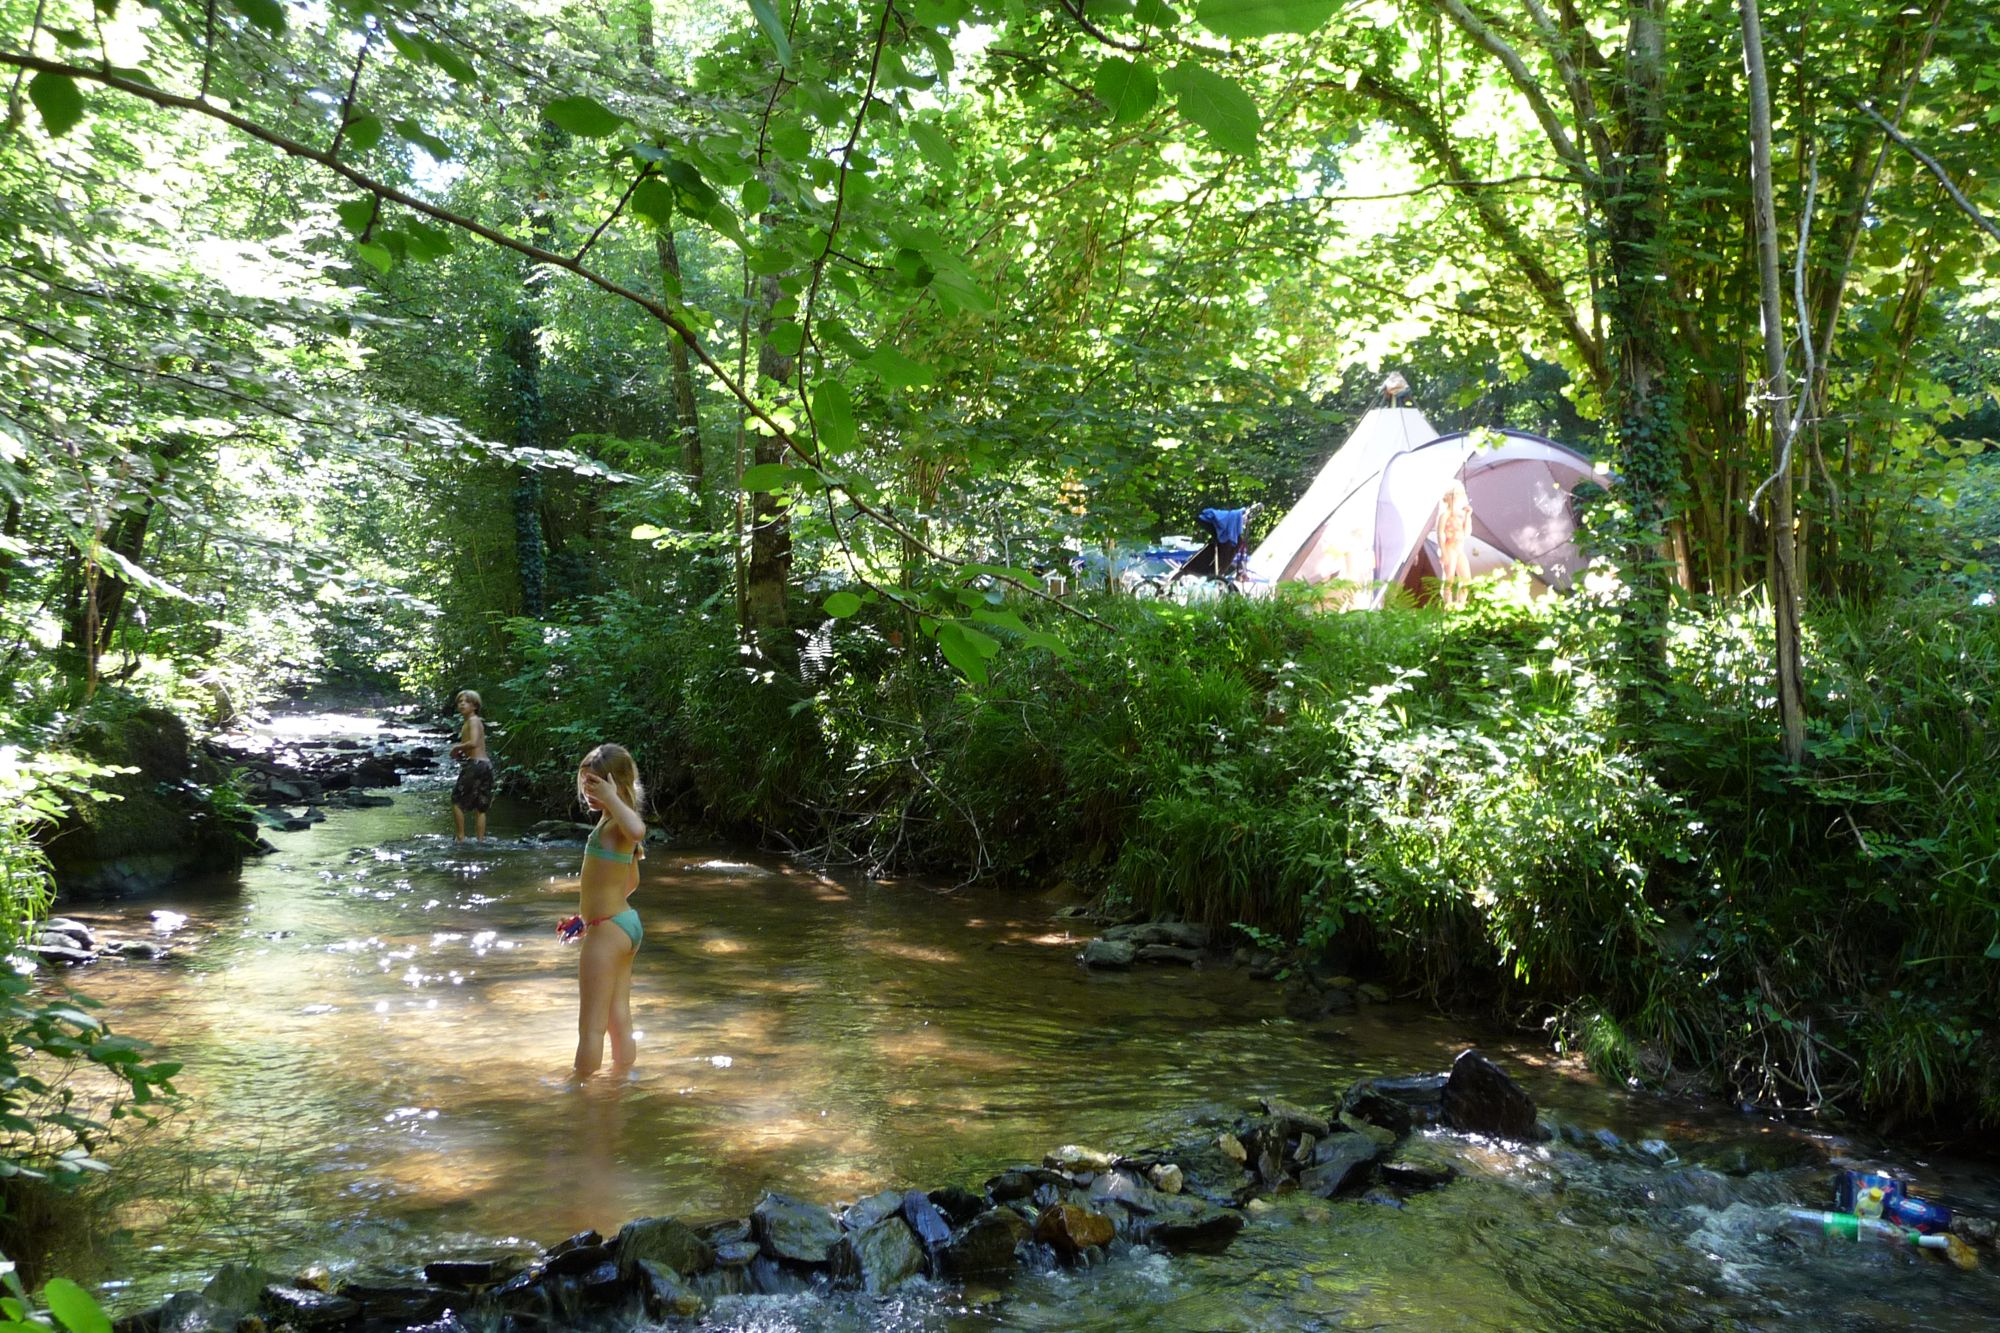 Moulin de Liort: A wonderfully hidden, family-friendly, riverside campsite with space for just a handful of lucky campers.